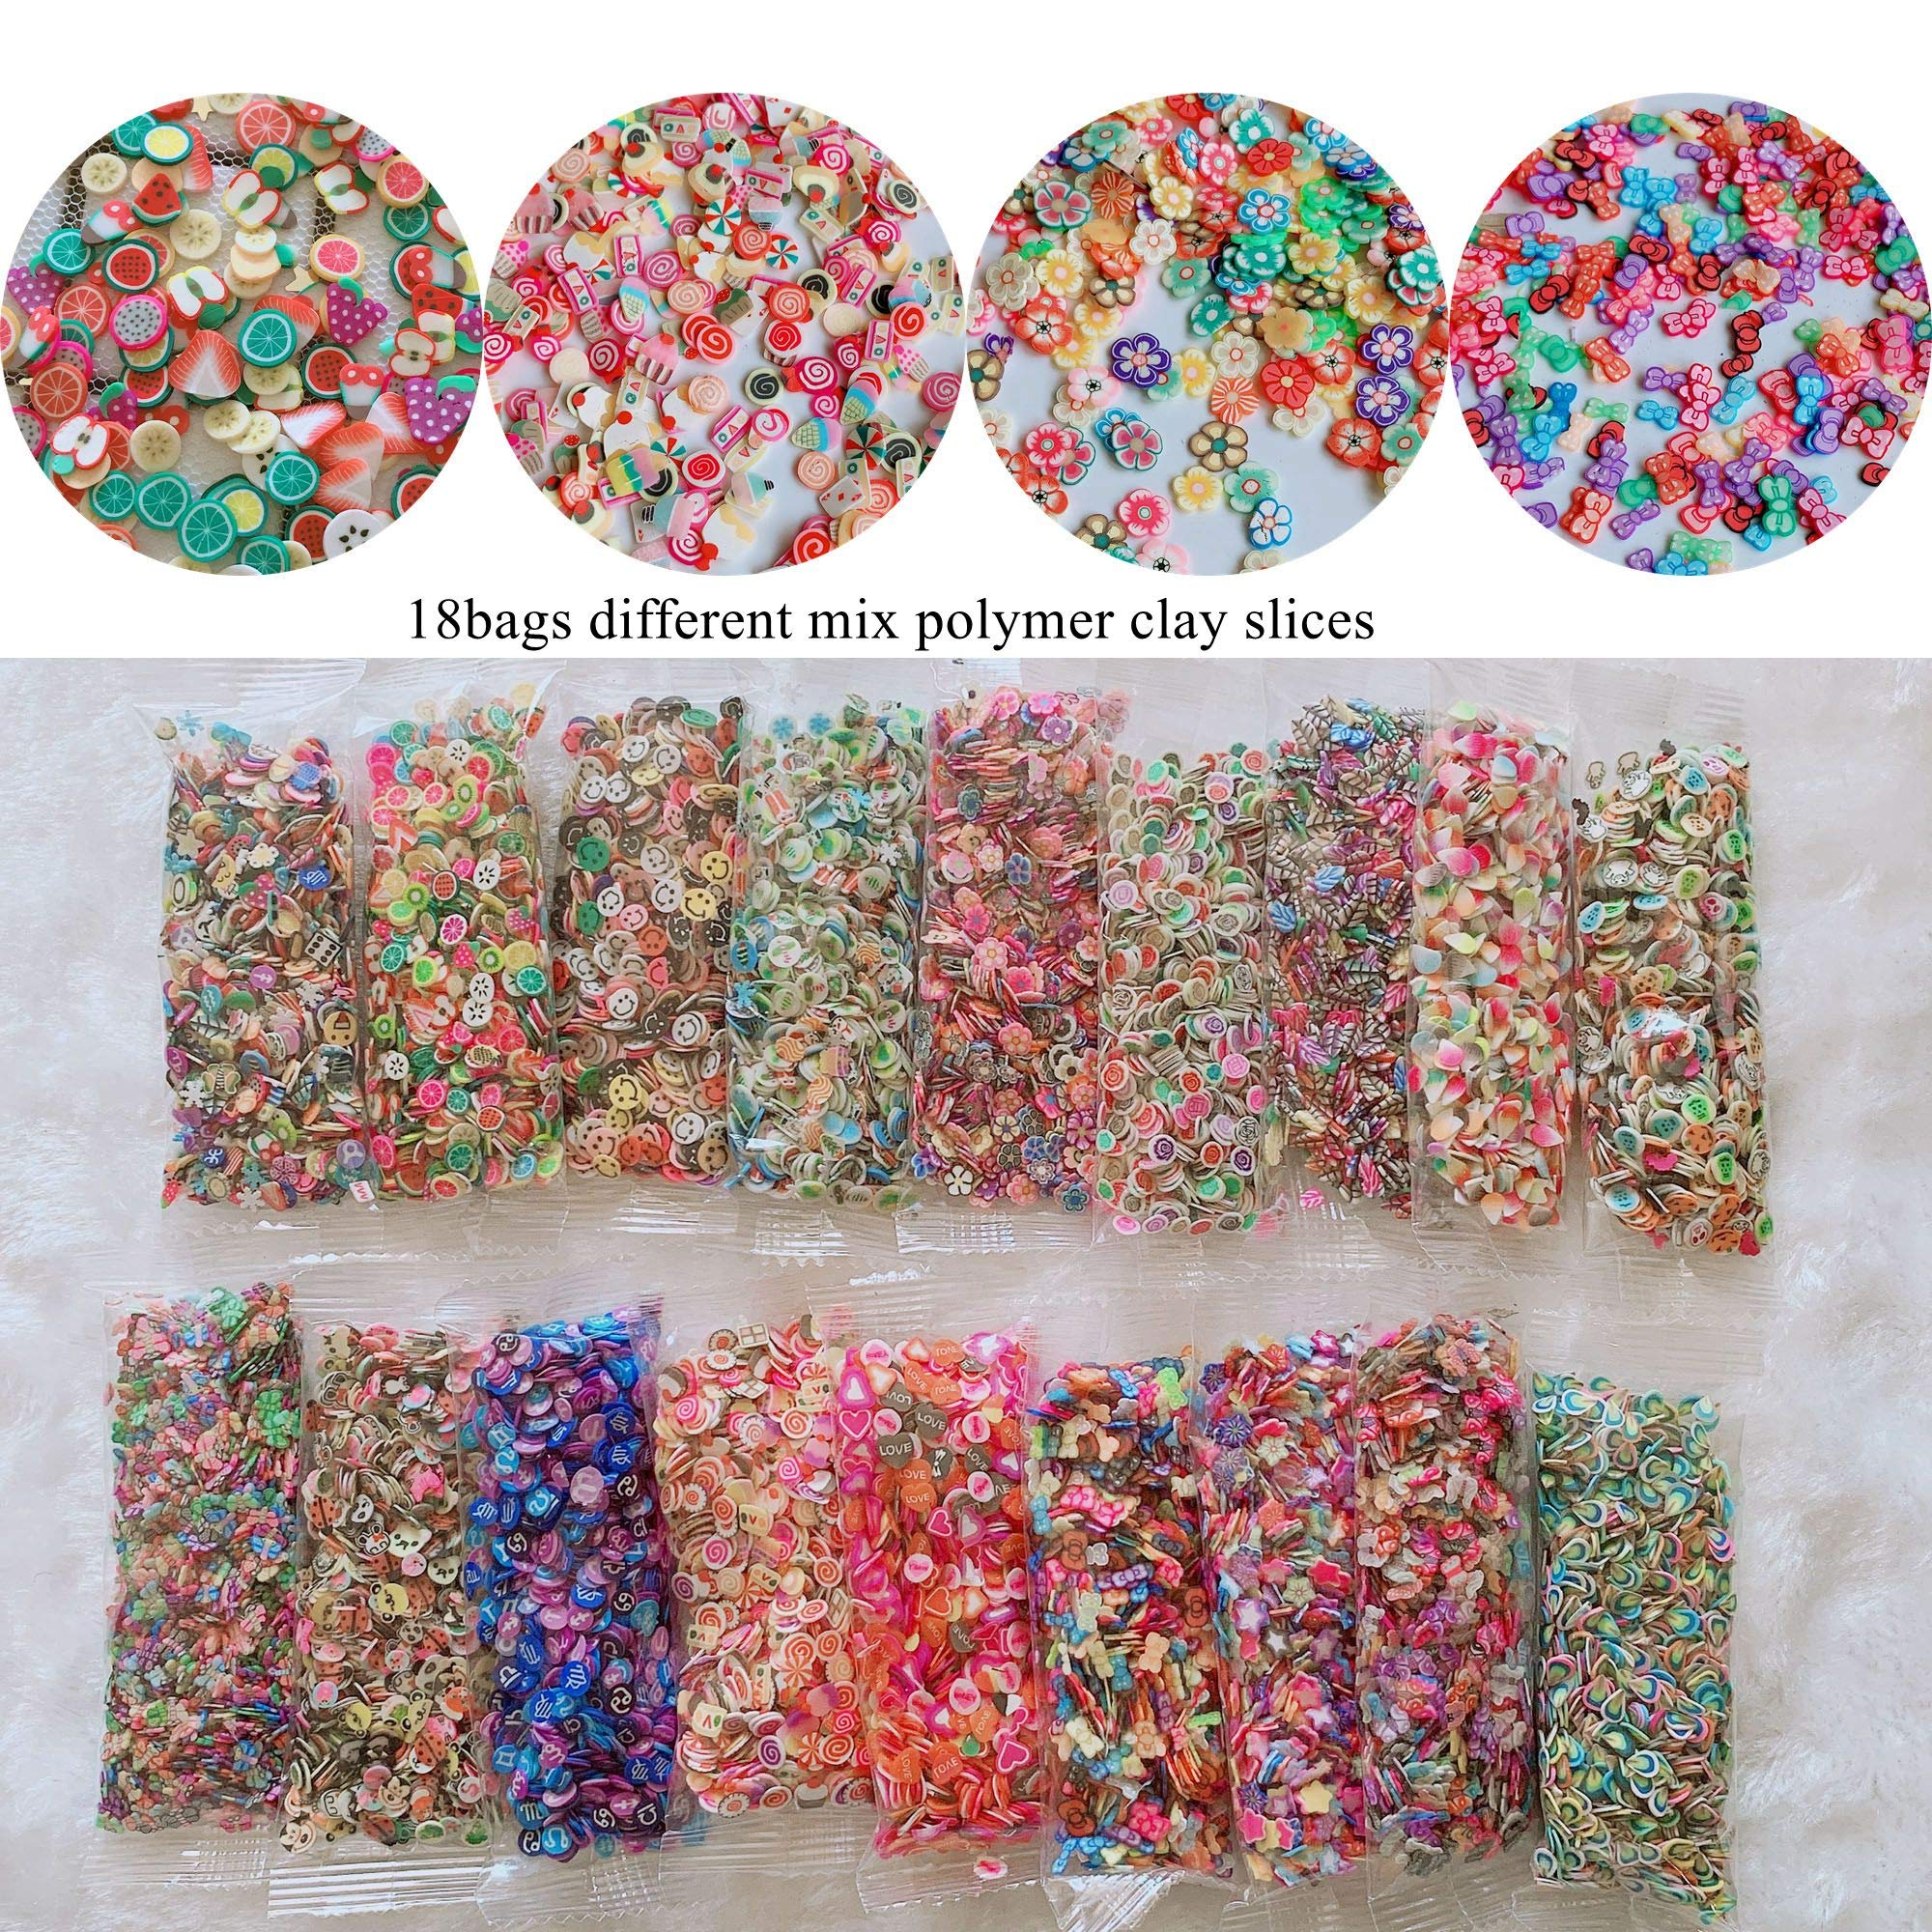 18bags Different Design Mix Bag Polymer Clay Slices Fruit Cake Flower Etc Shapes Mix 10051 by Nail Angel